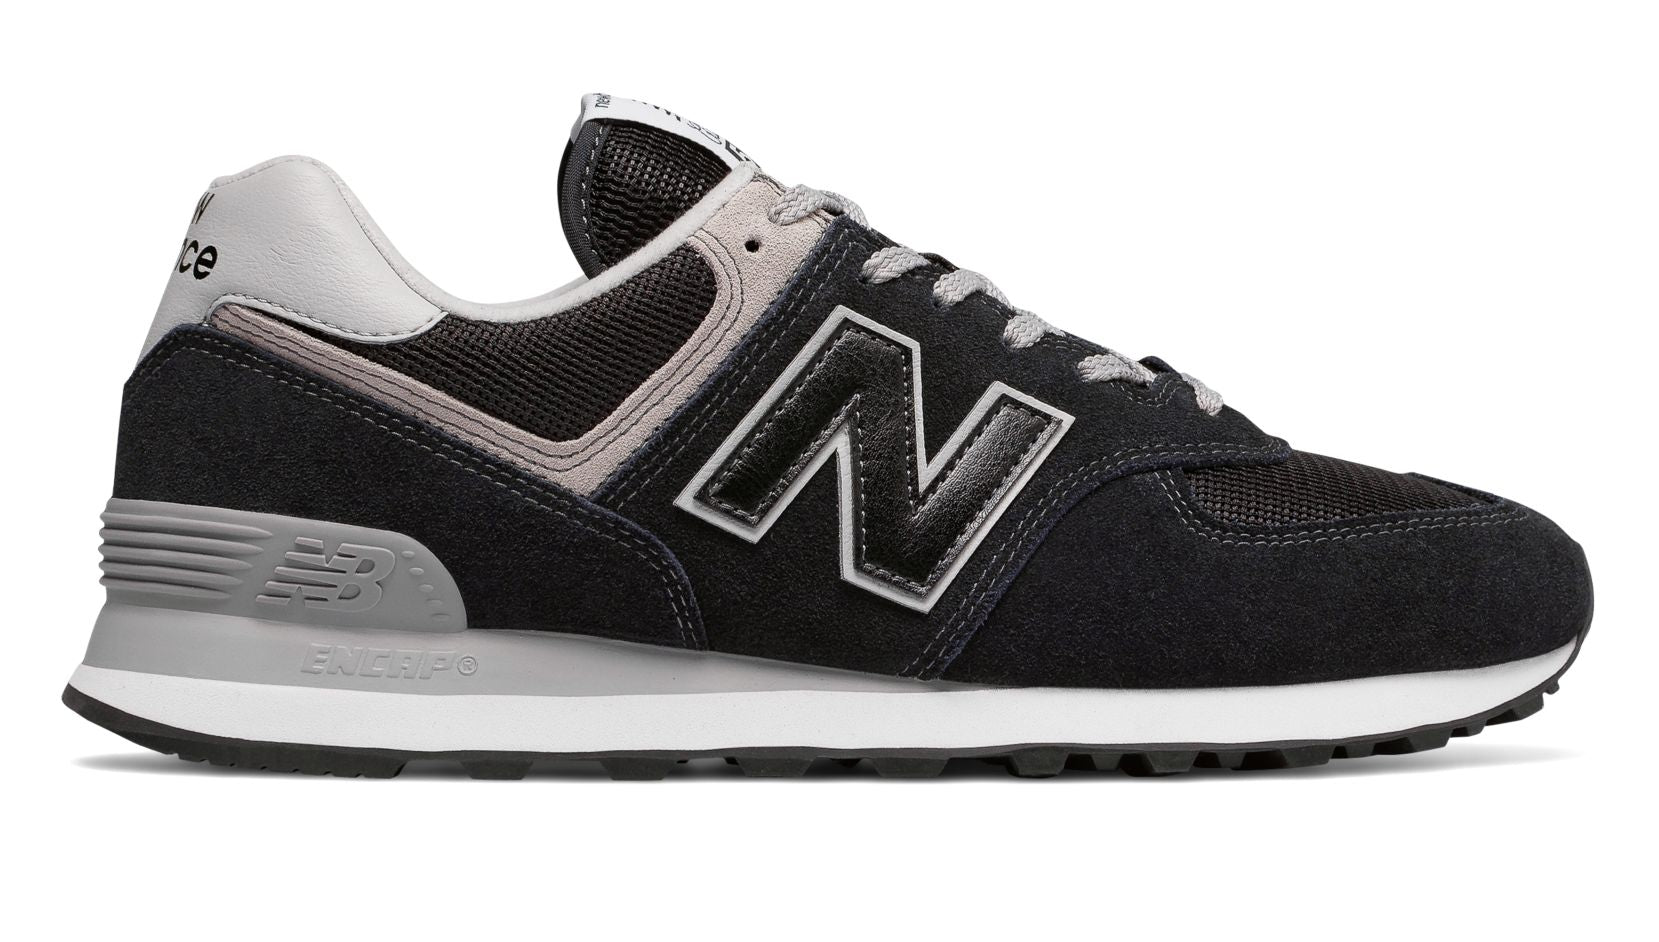 timeless design a3257 d3752 New Balance Men's Shoe Black 574 Classic